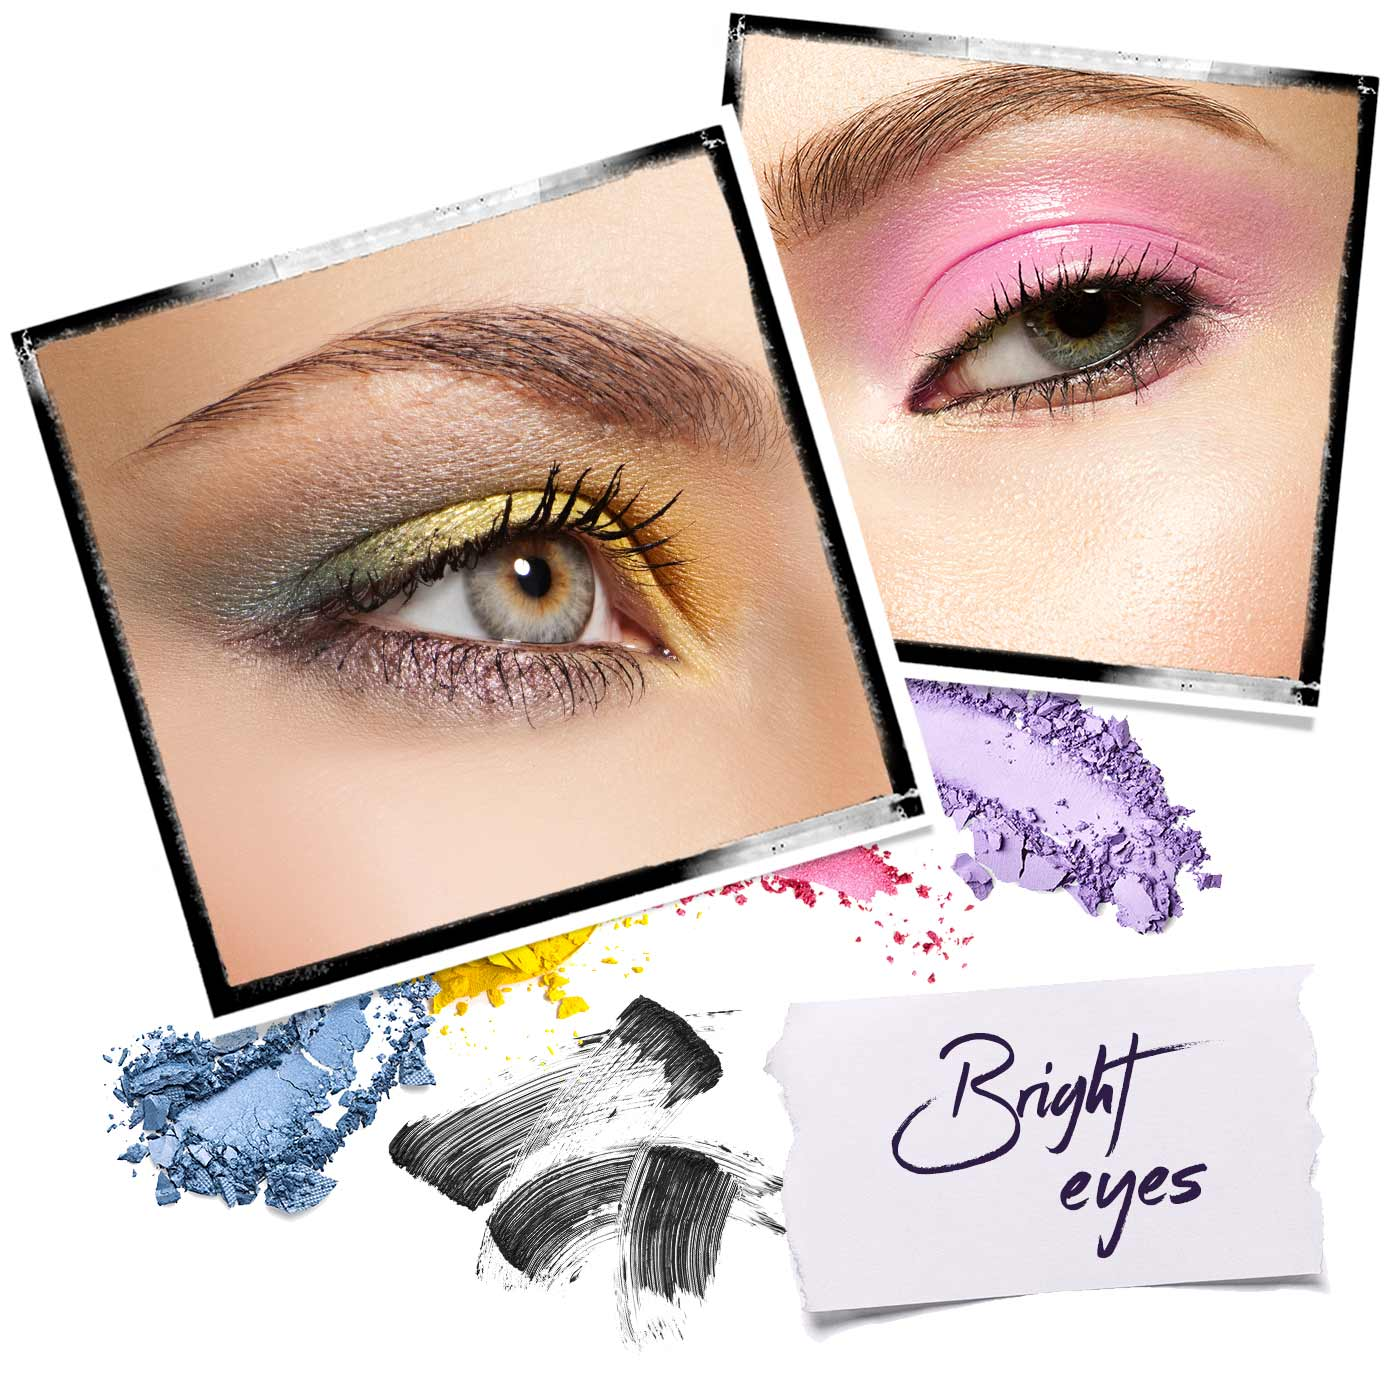 925677a7905 Eye Catching: Summer 2019 Makeup Trends - Nouveau Lashes